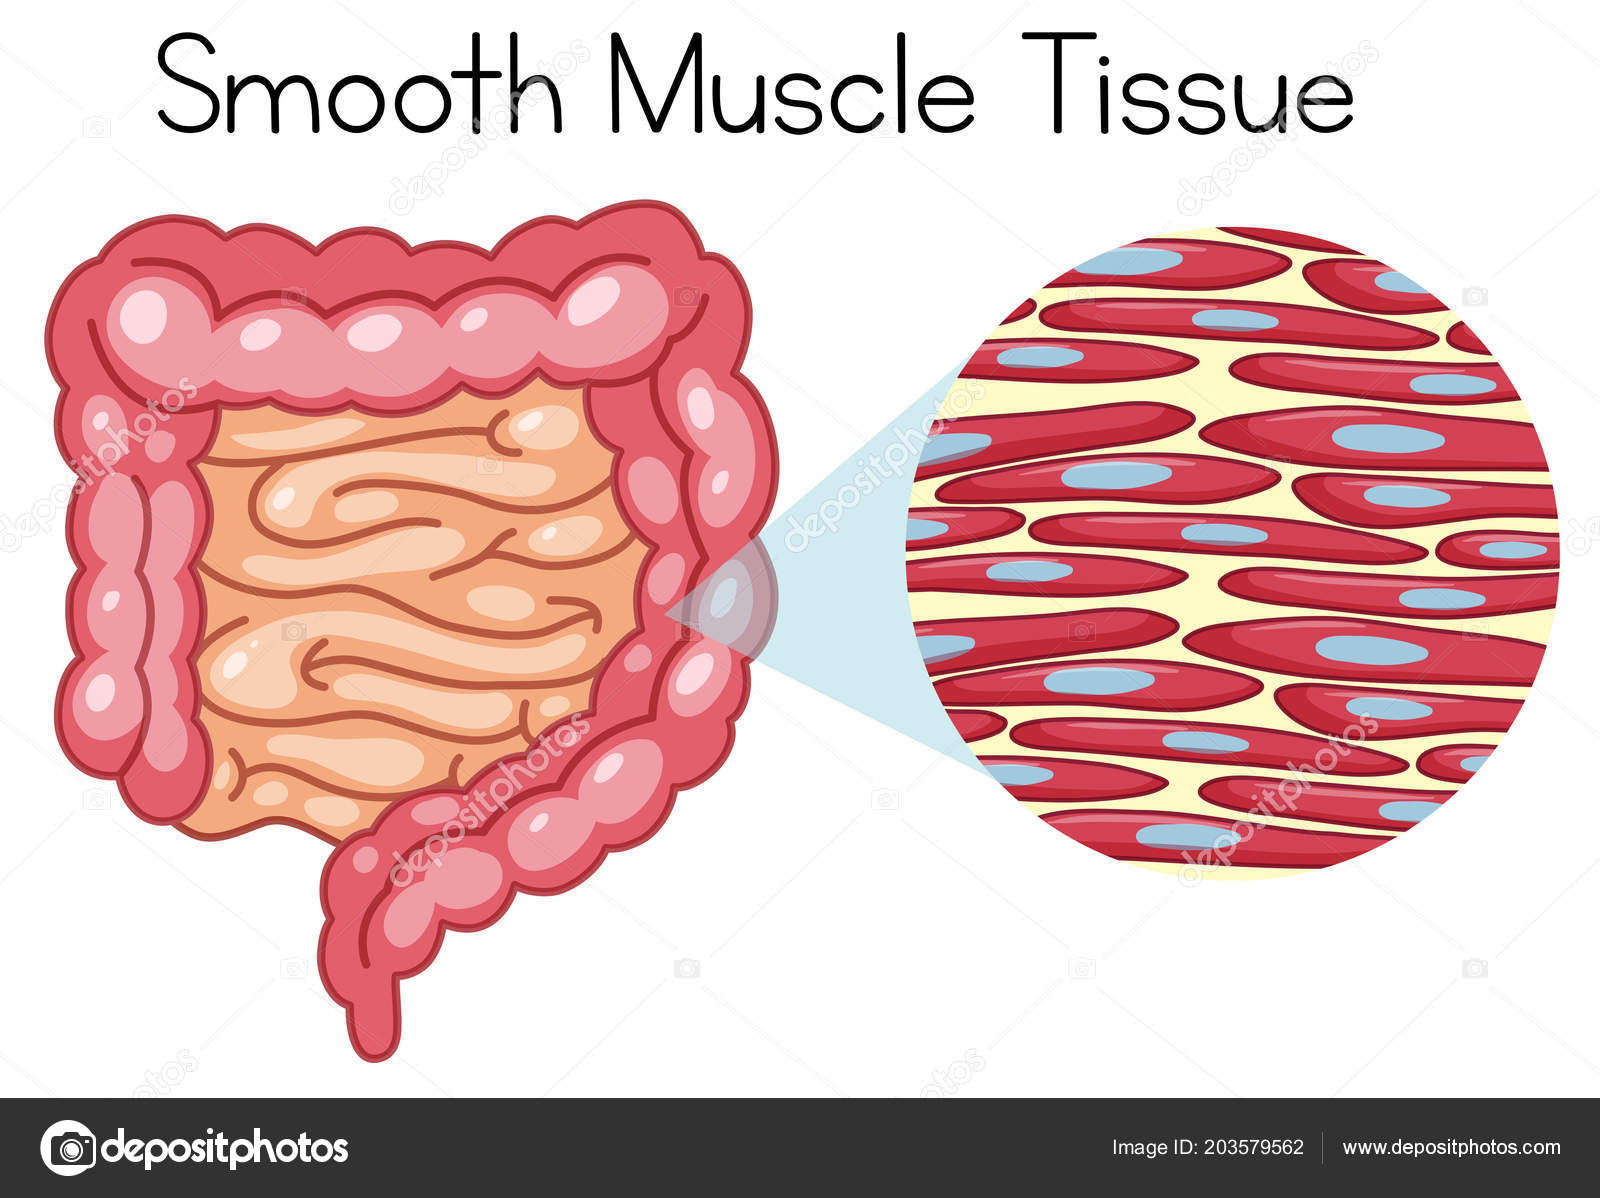 Anatomy Smooth Muscle Tissue Illustration Stock Vector Brgfx